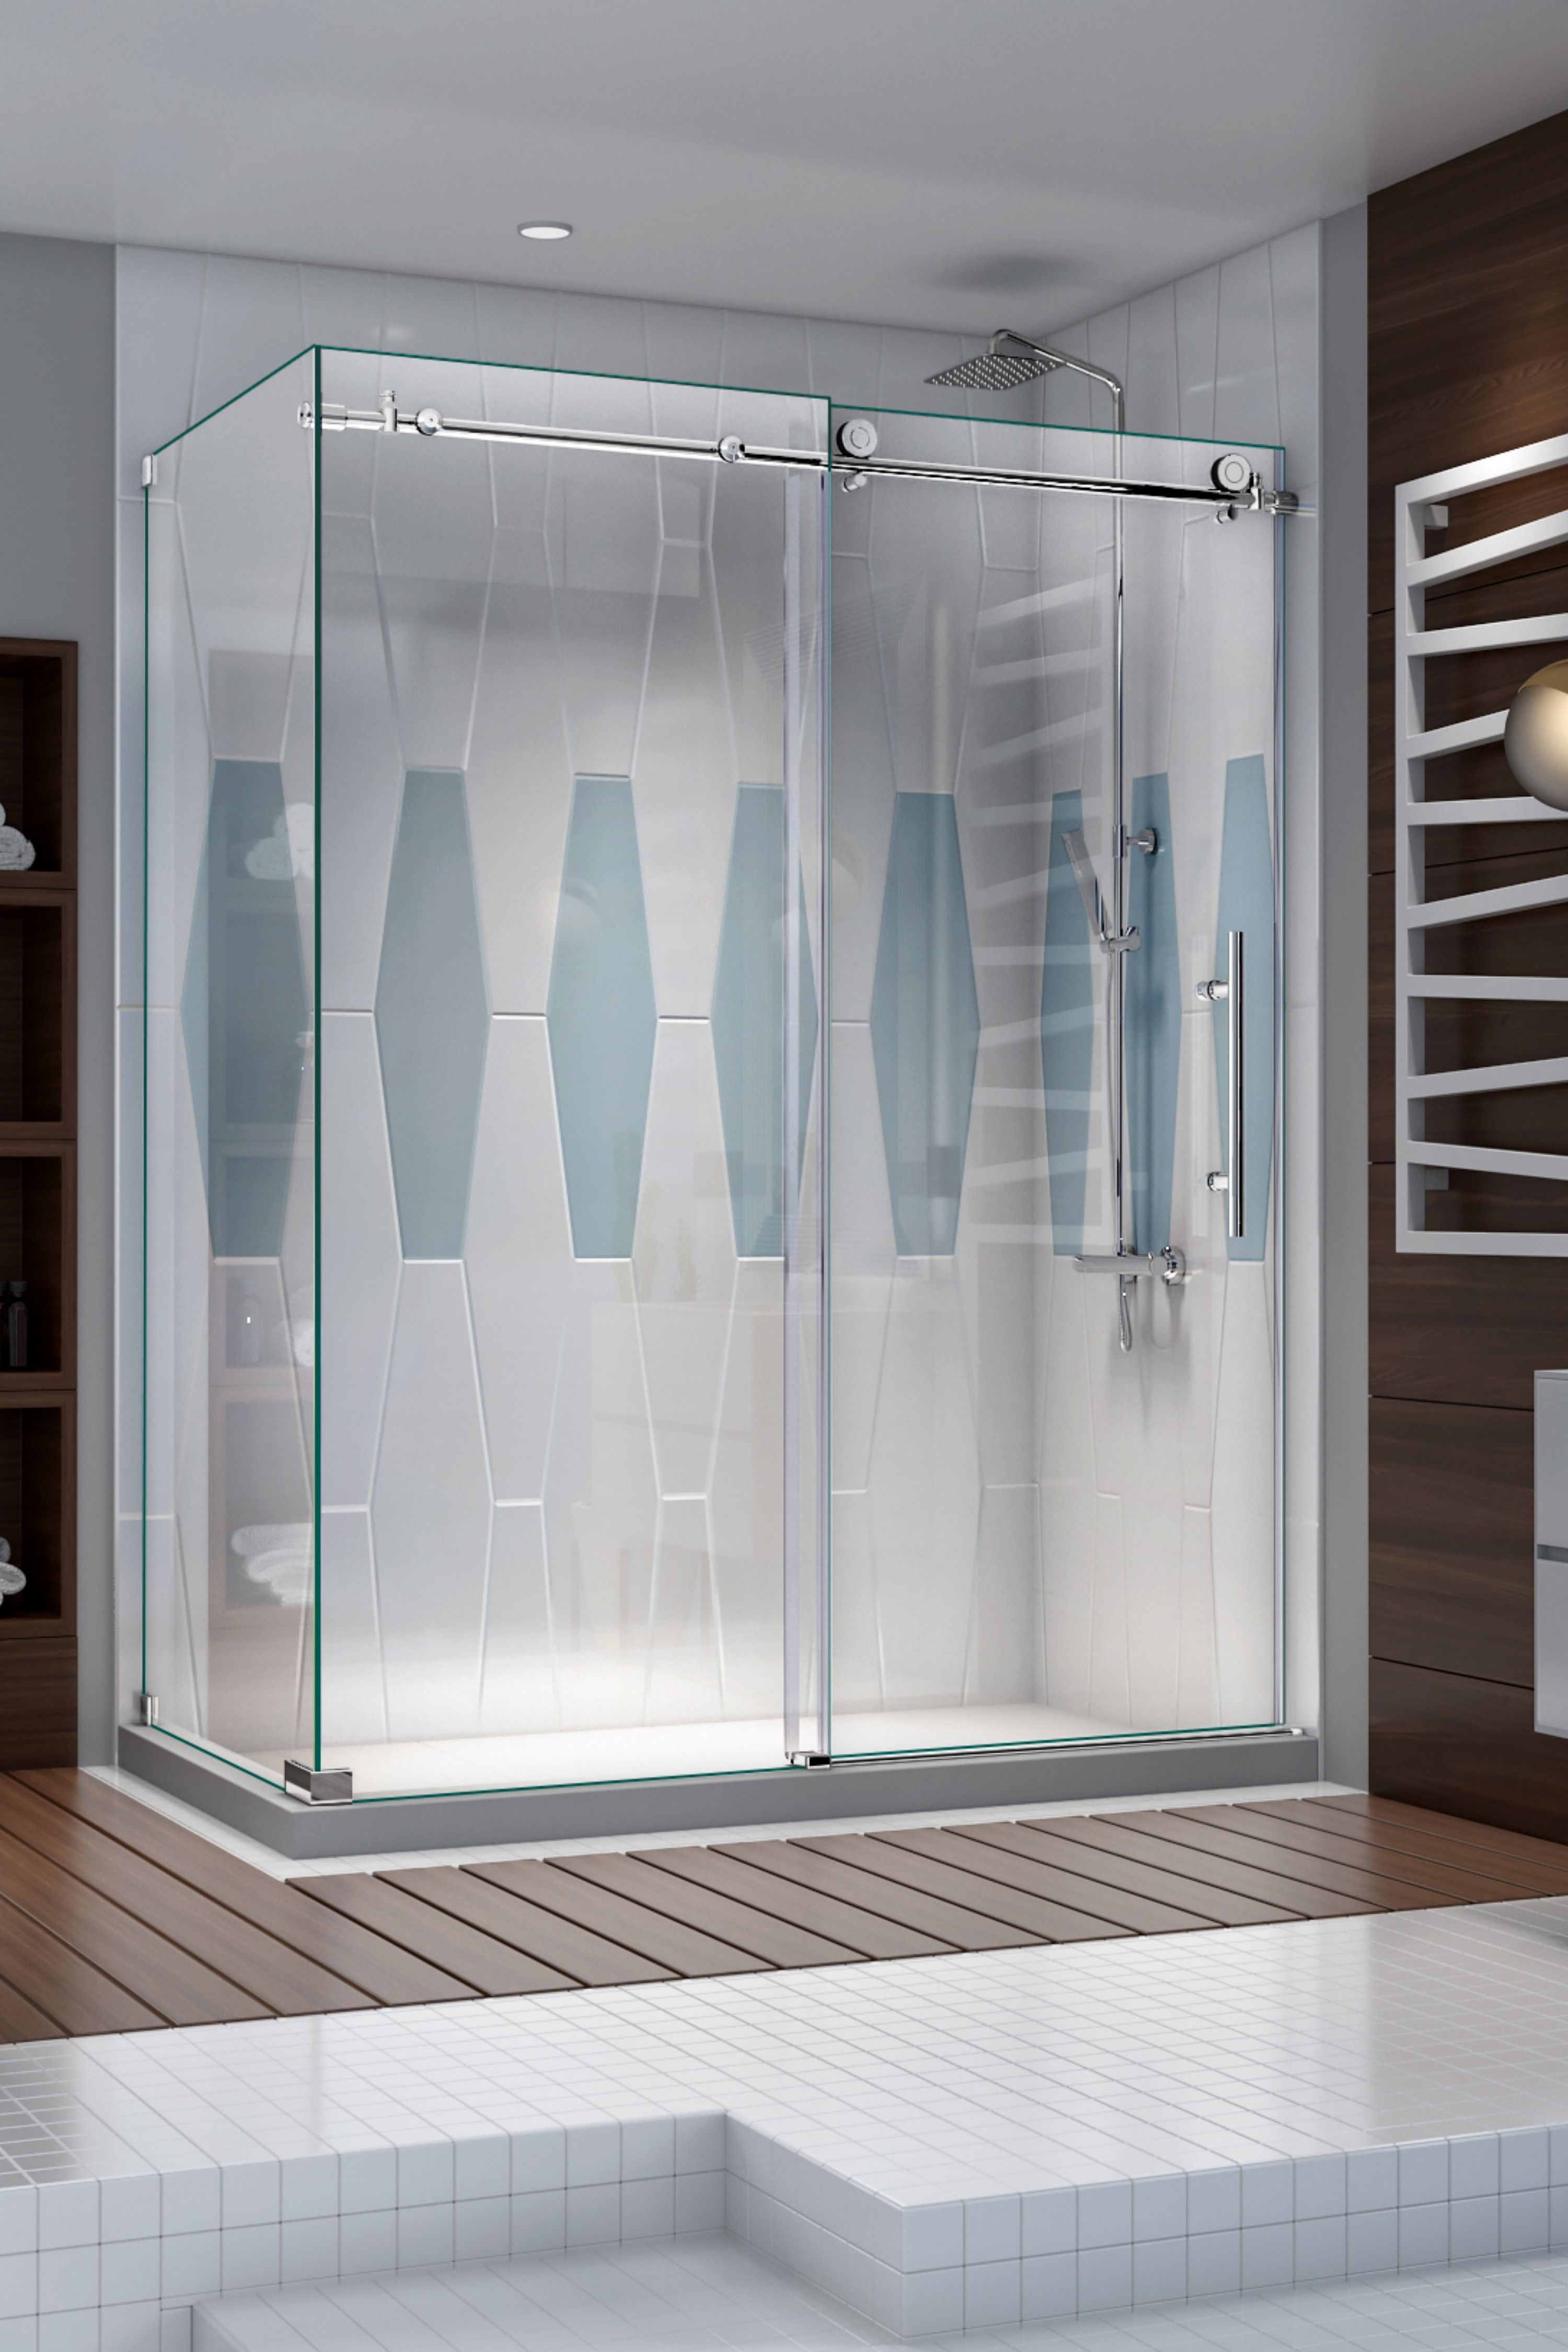 Dreamline S Custom Glass Group Custom Glass Dreamline Shower Doors